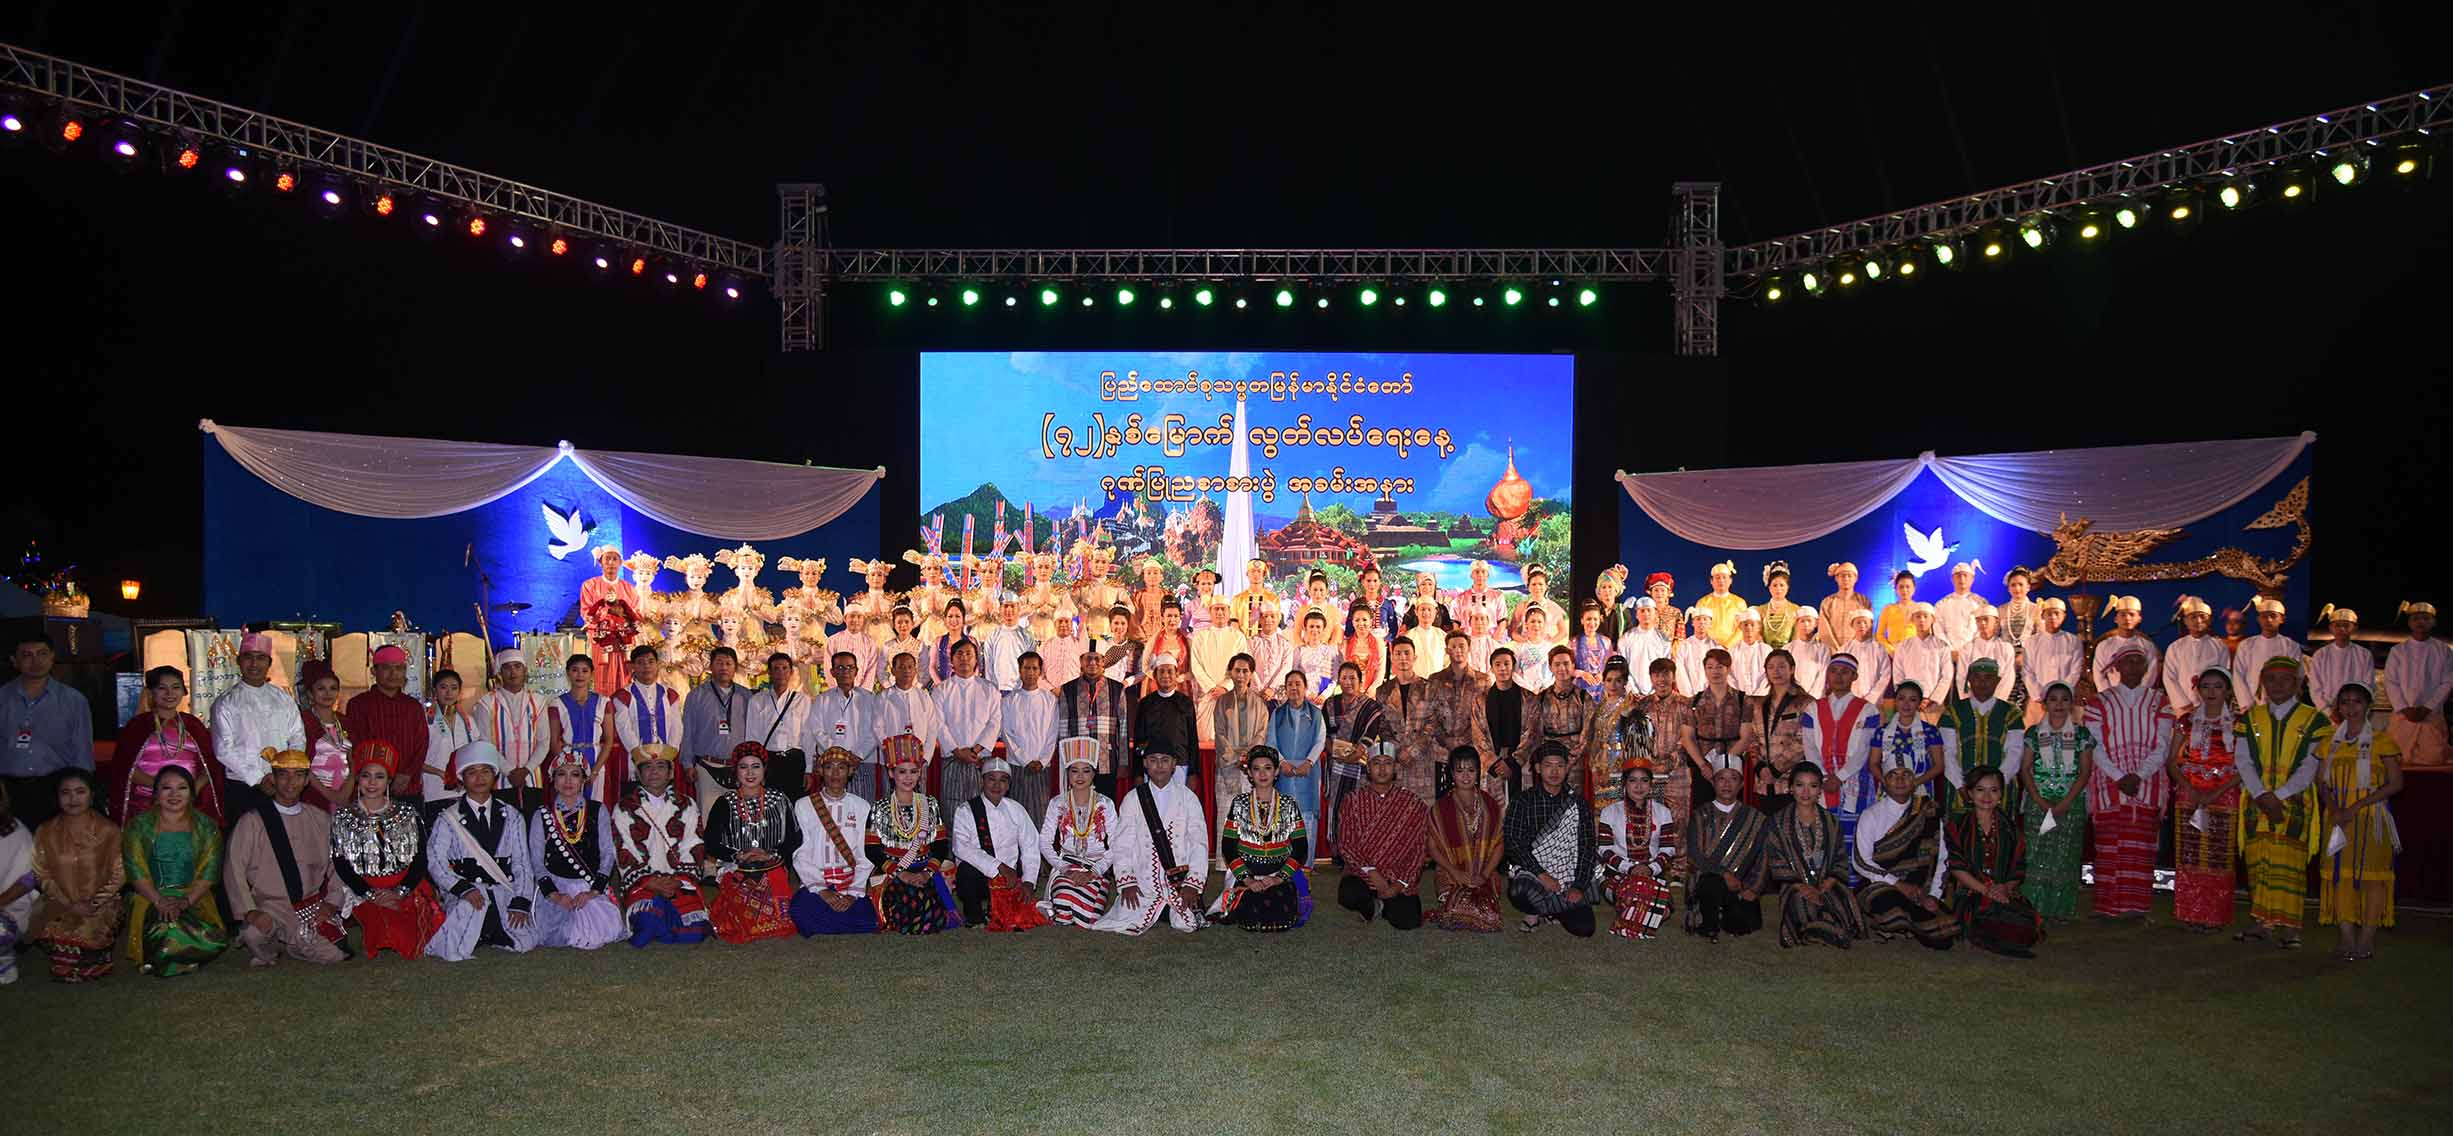 President U Win Myint, First Lady Daw Cho Cho, State Counsellor Daw Aung San Suu Kyi, dignitaries and artistes from Department of Fine Arts pose for a group photo at the dinner in commemoration of the 72nd Anniversary of Independence Day in Nay Pyi Taw yesterday. Photo: MNA